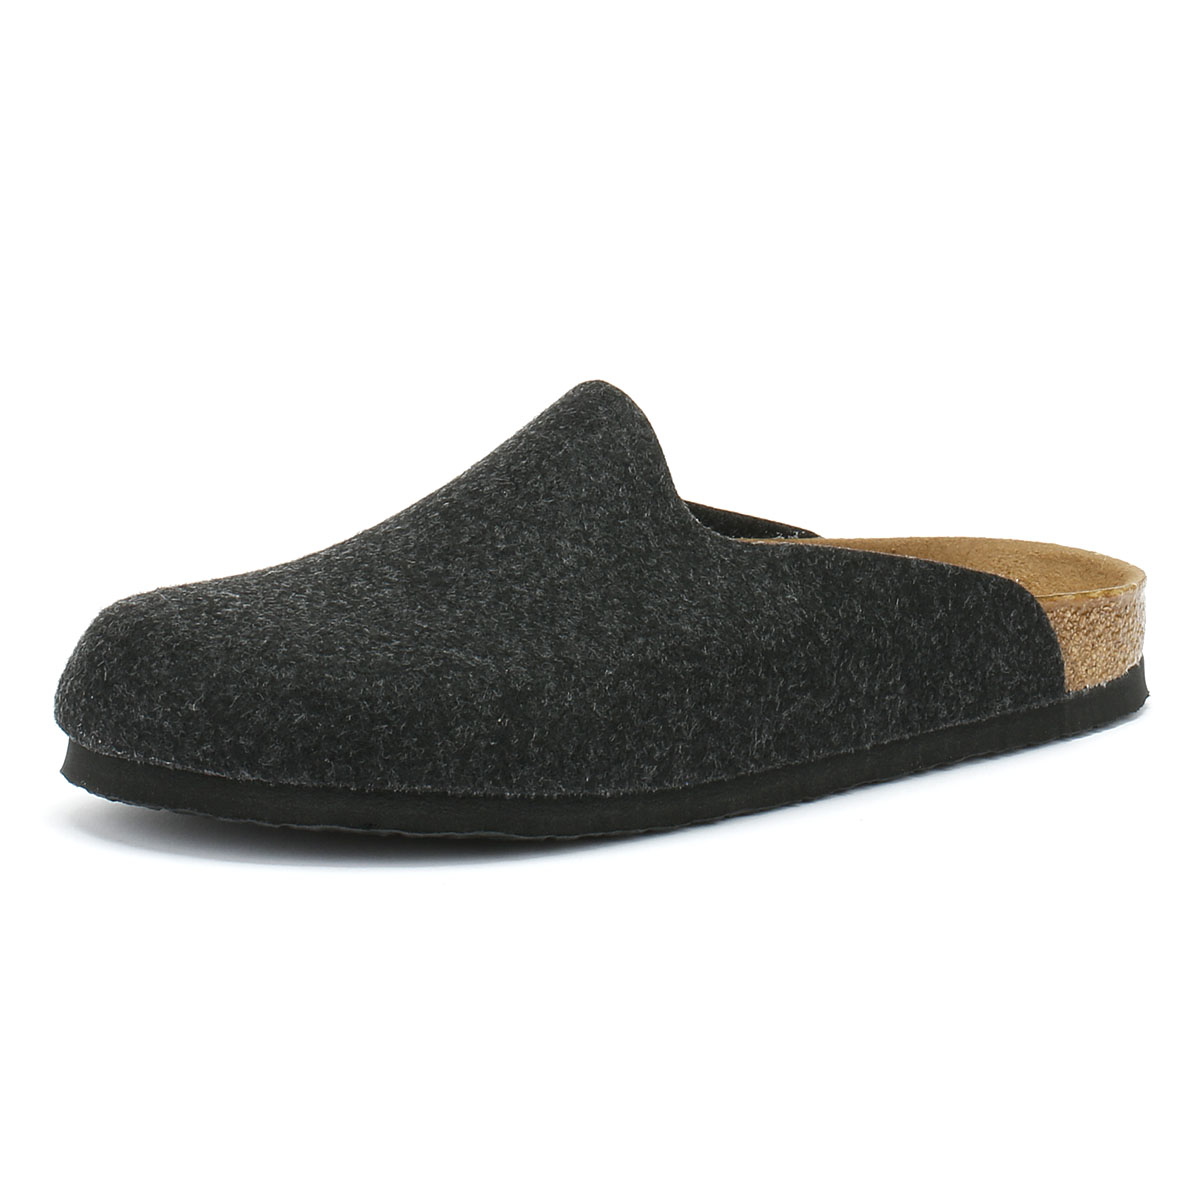 cfc95b9f55bc Details about Birkenstock Amsterdam Womens Grey Anthracite Slippers Home  Shoes